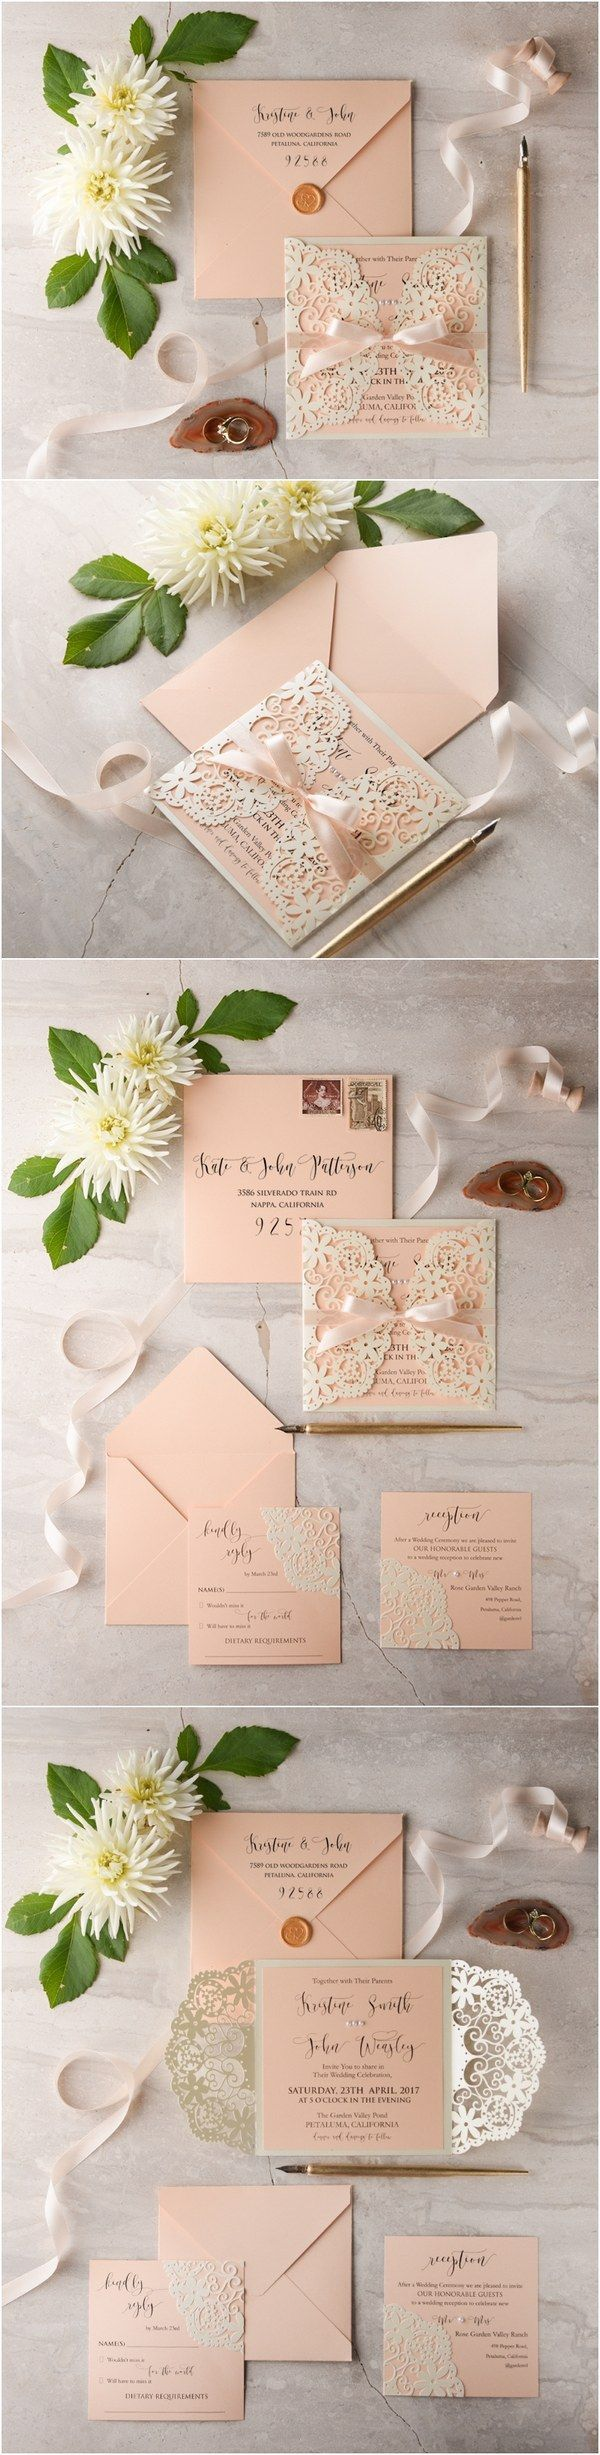 Peach and Ivory laser cut wedding invitations